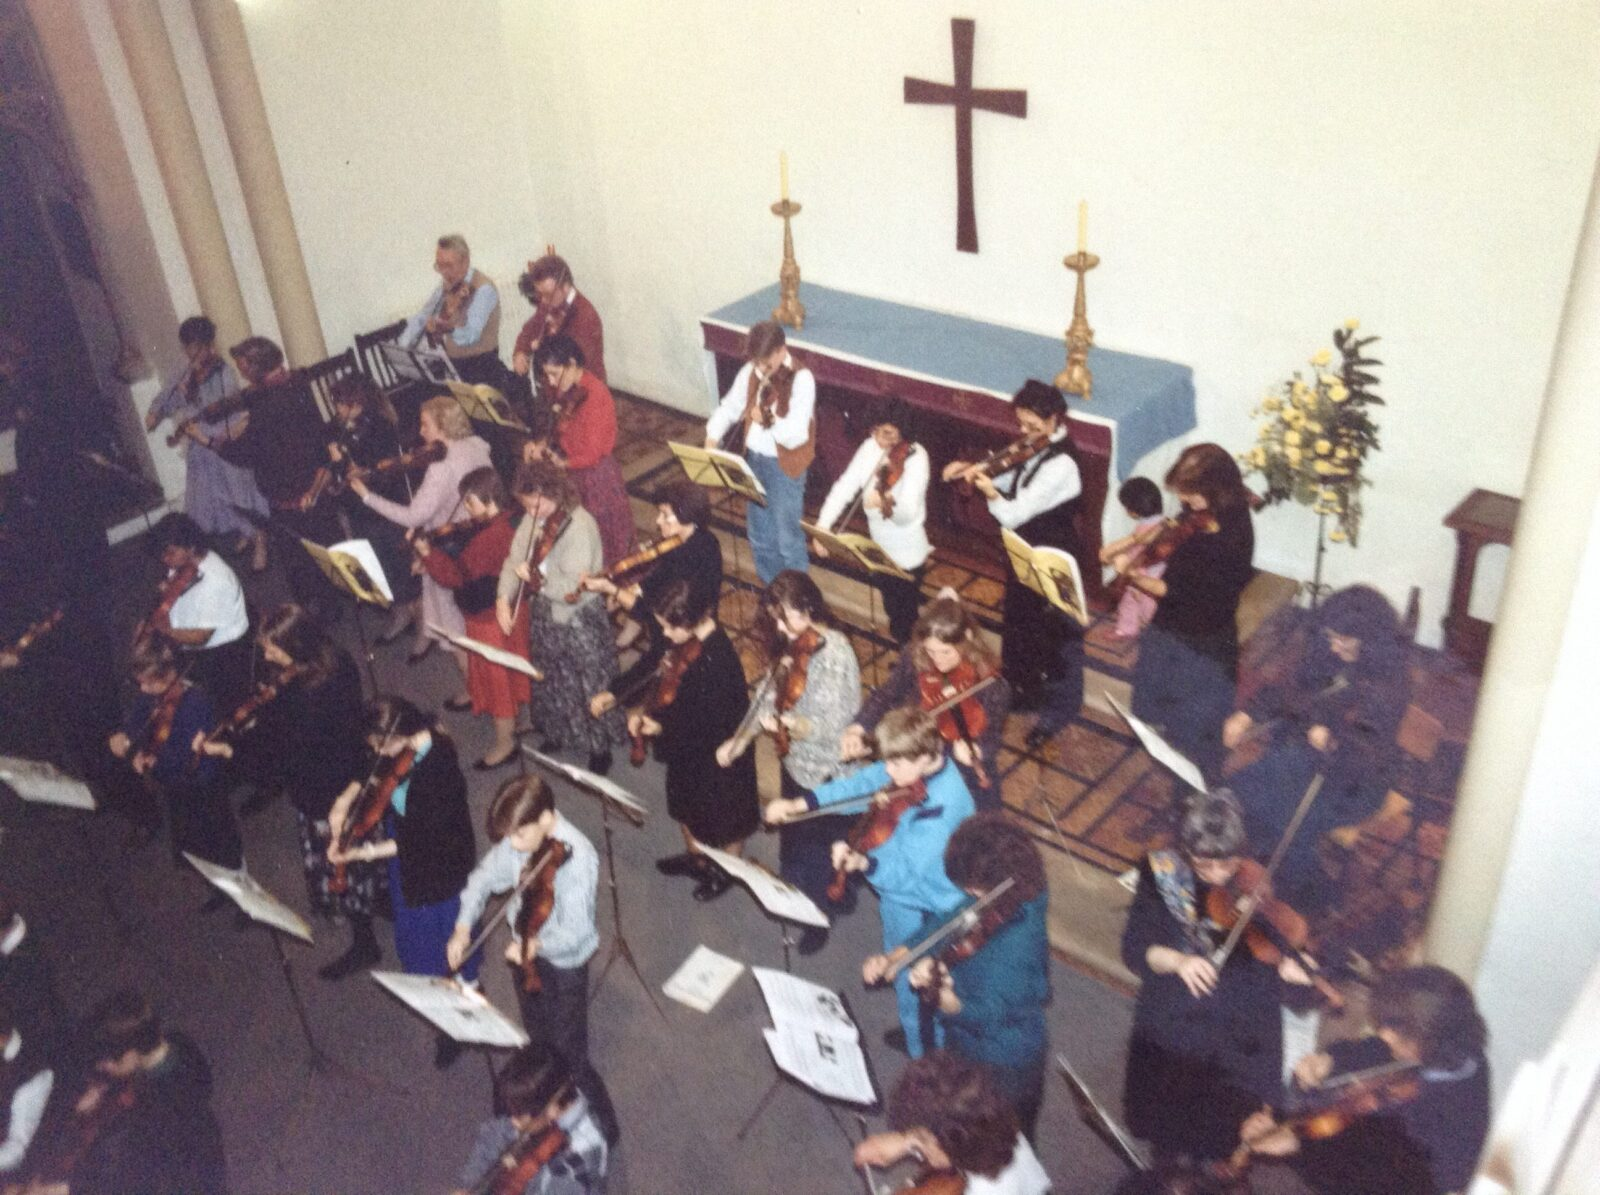 Playing an Xmas concert at St Botolphs, Colchester